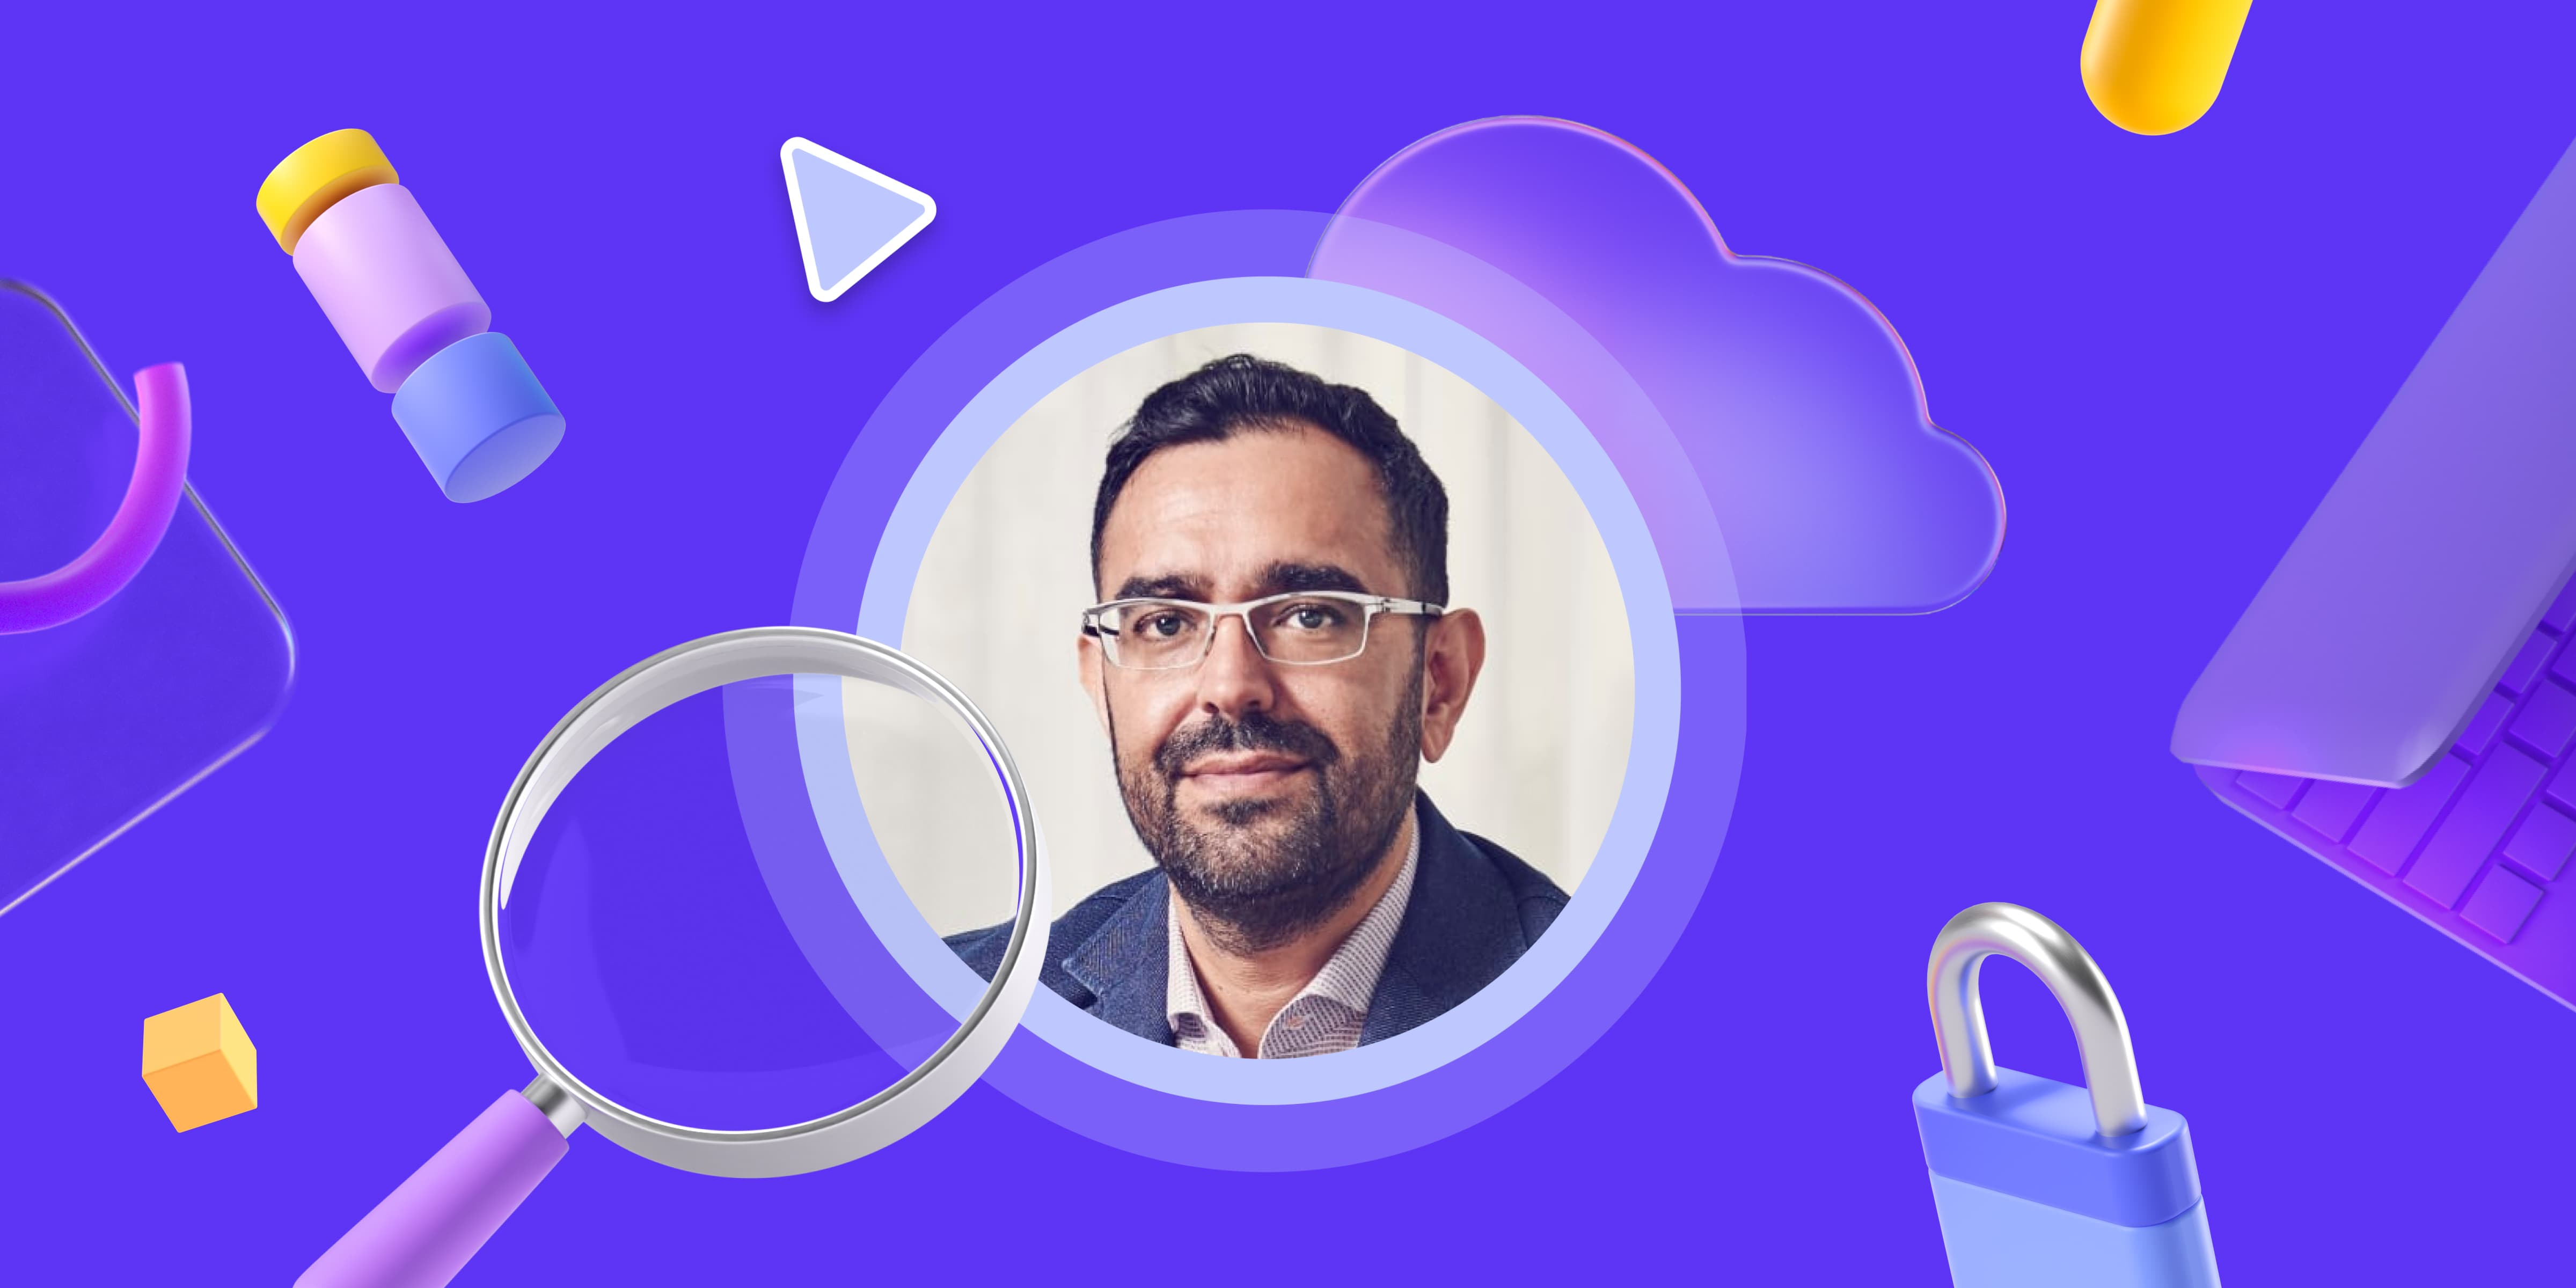 Azeem Azhar is the founder of Exponential View